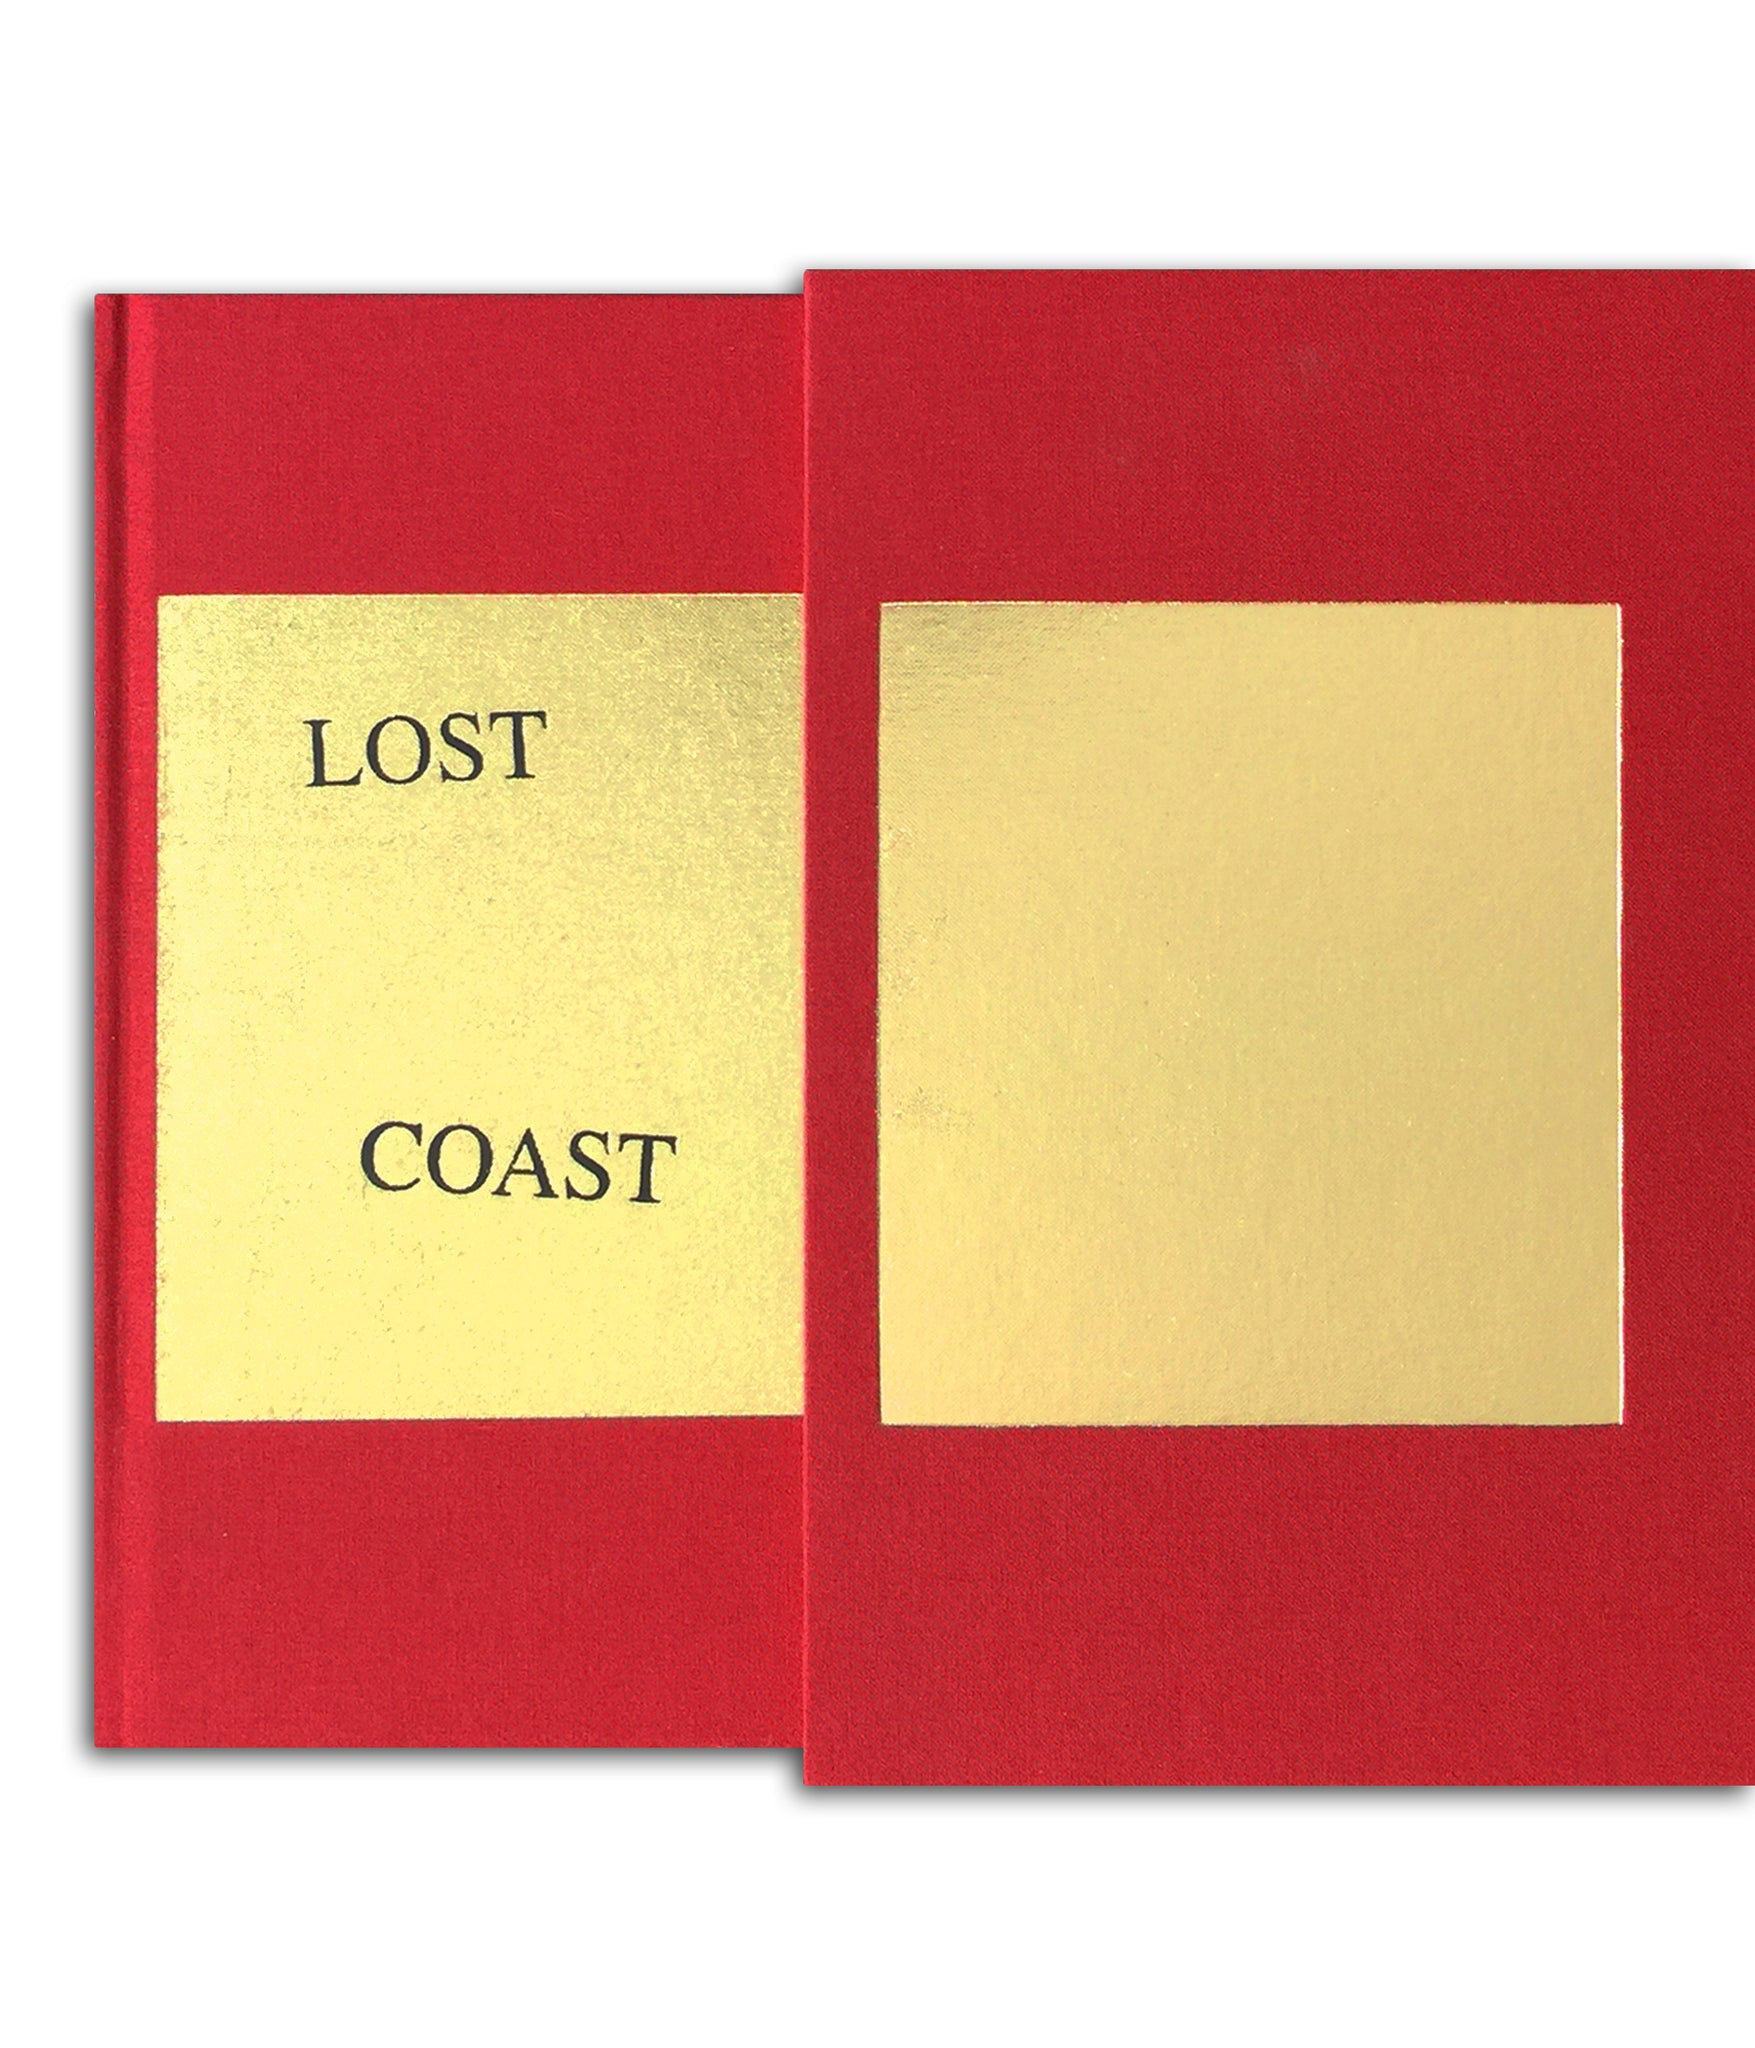 Lost Coast - Special Edition